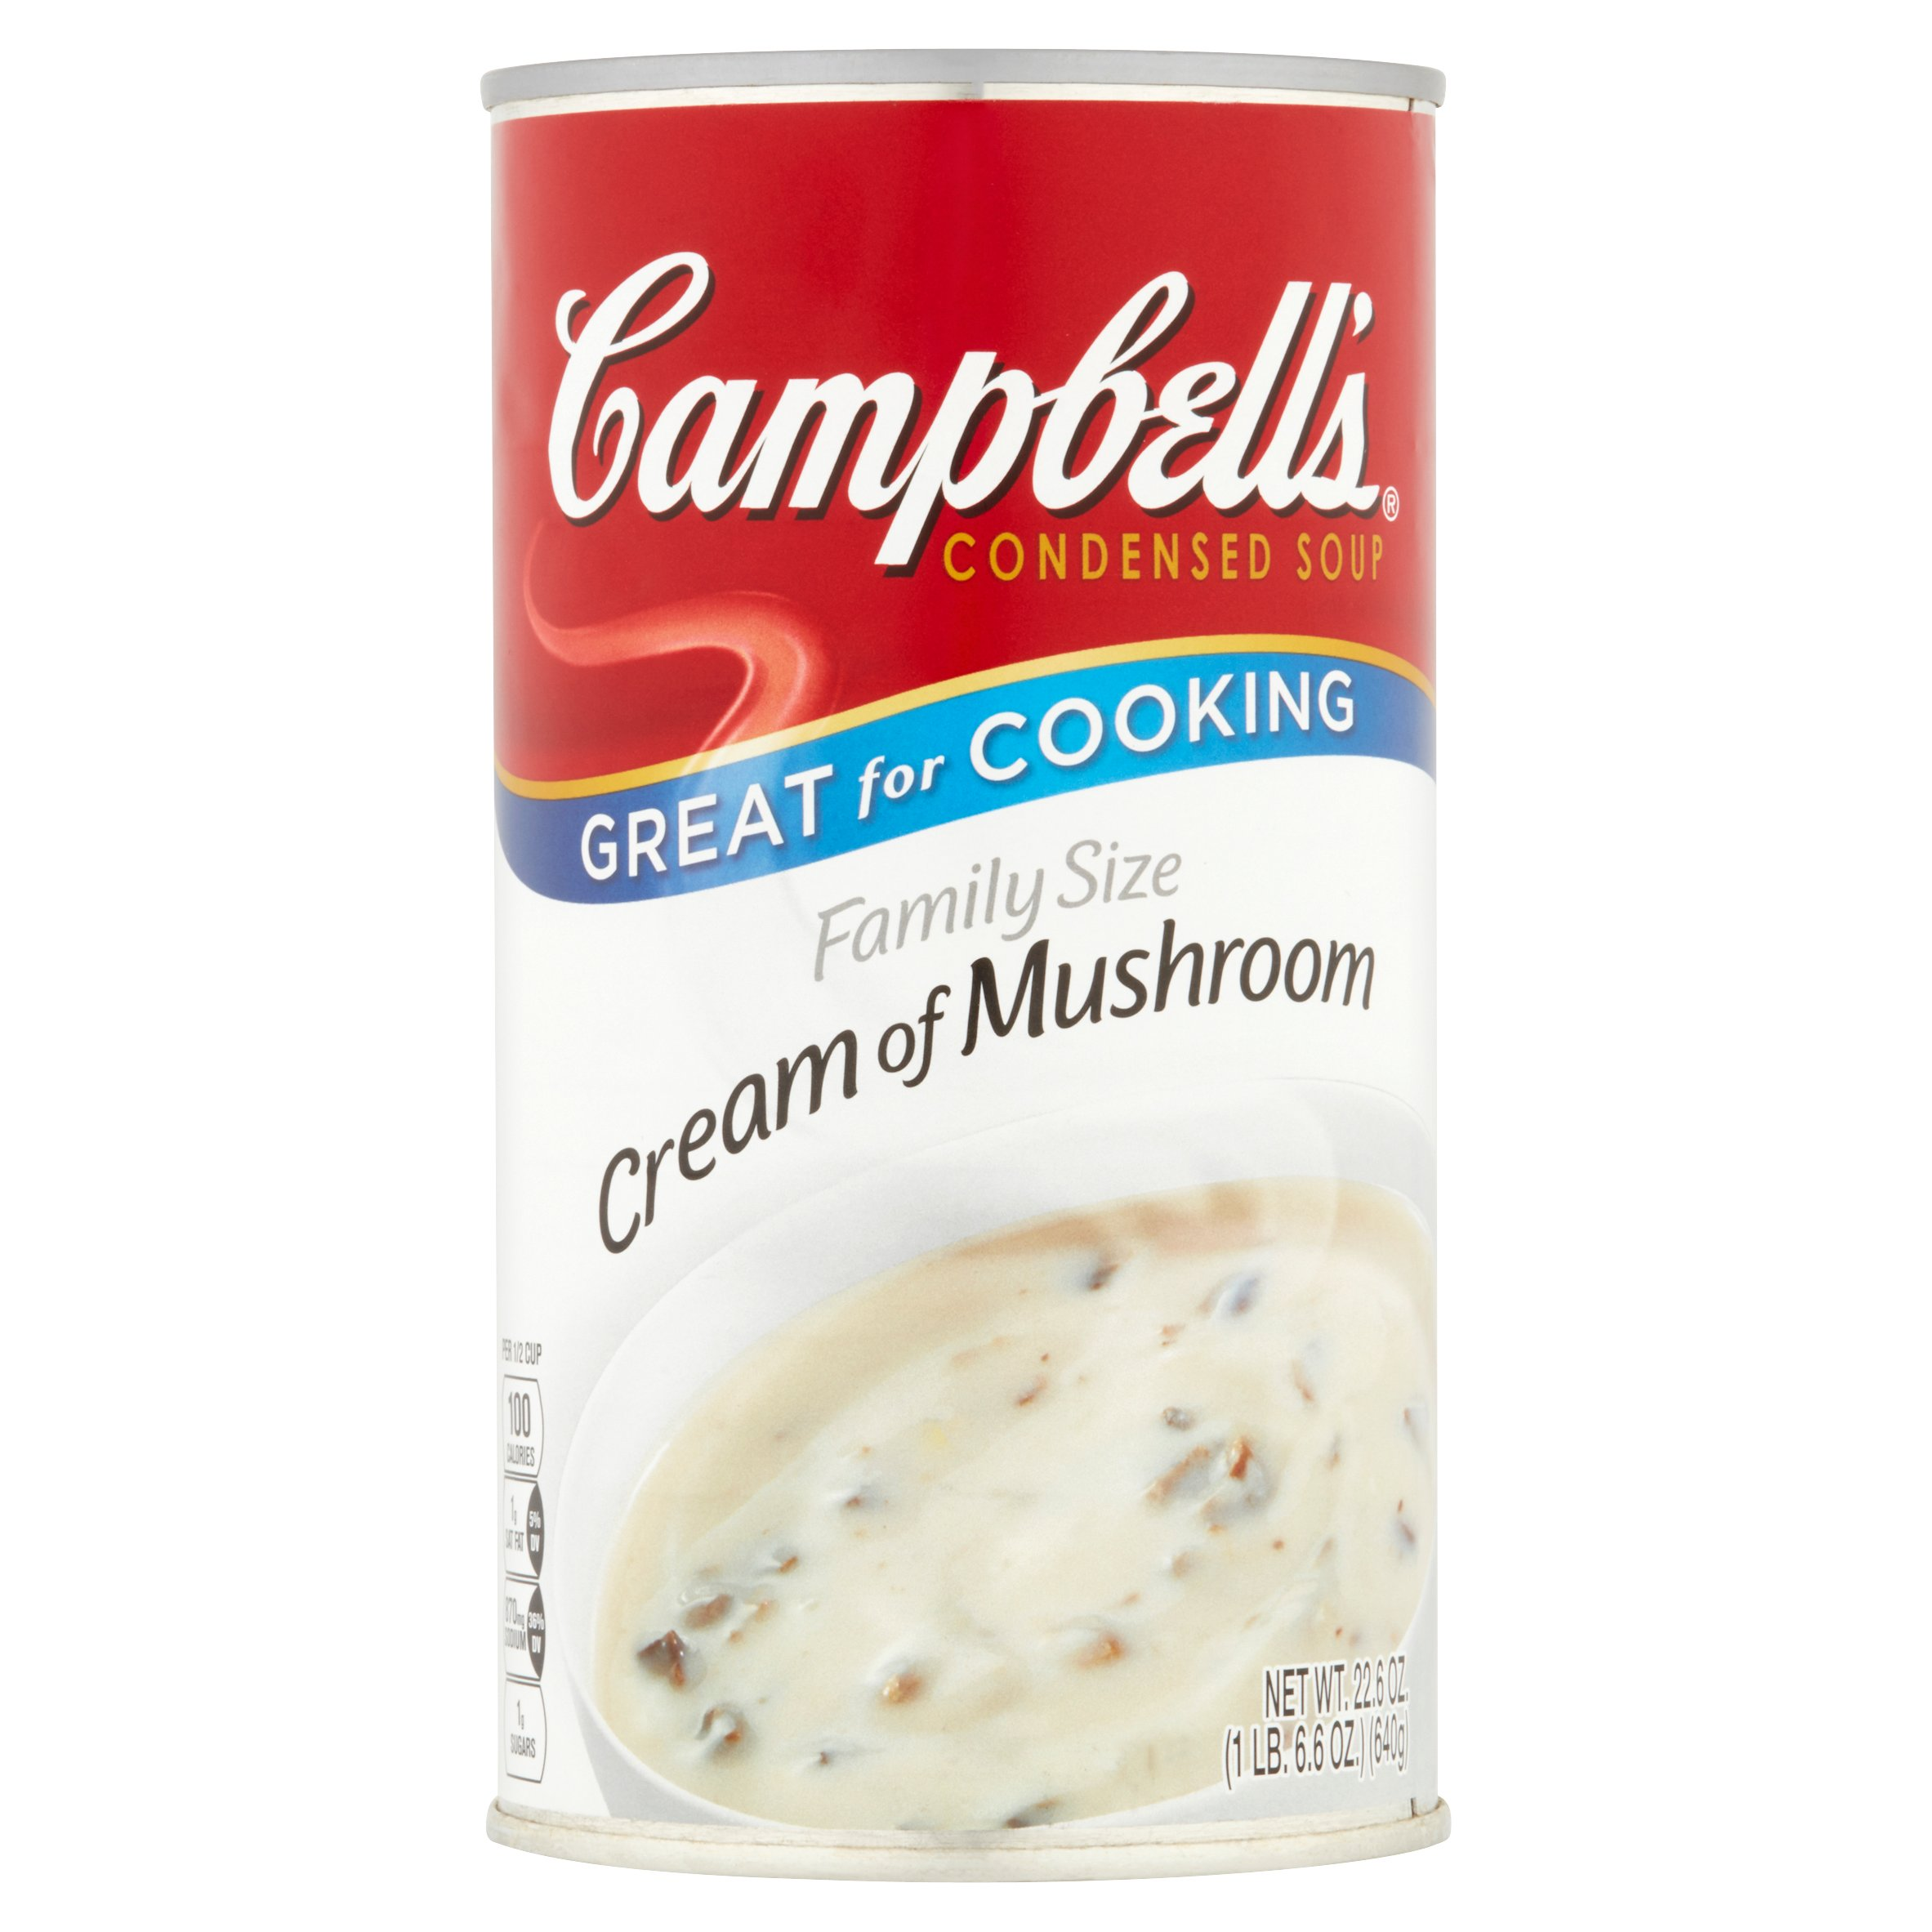 Campbell's Cream of Mushroom Condensed Soup, 22.6 oz by Campbell Soup Company